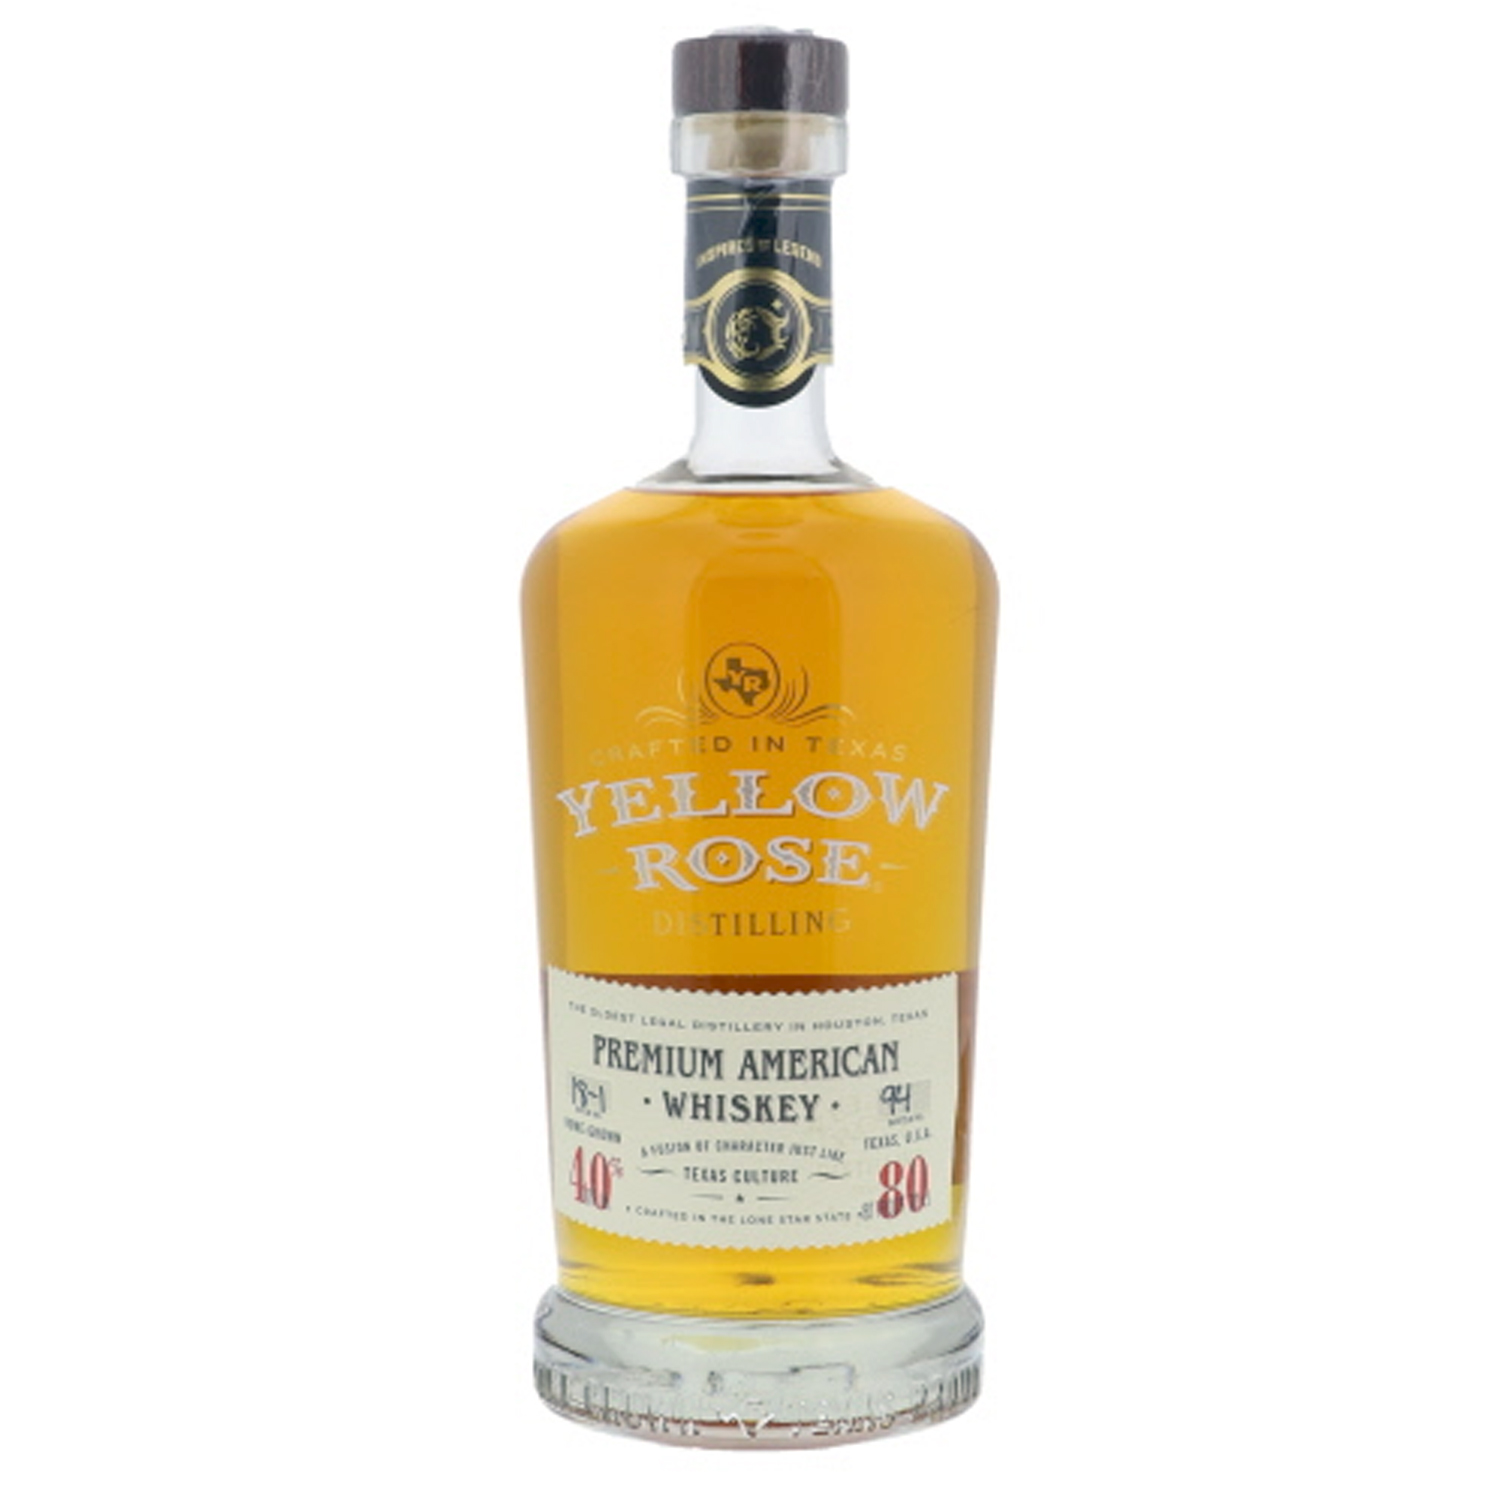 Whisky - Yellow Rose - Premium American Whiskey - 70cl - 40°